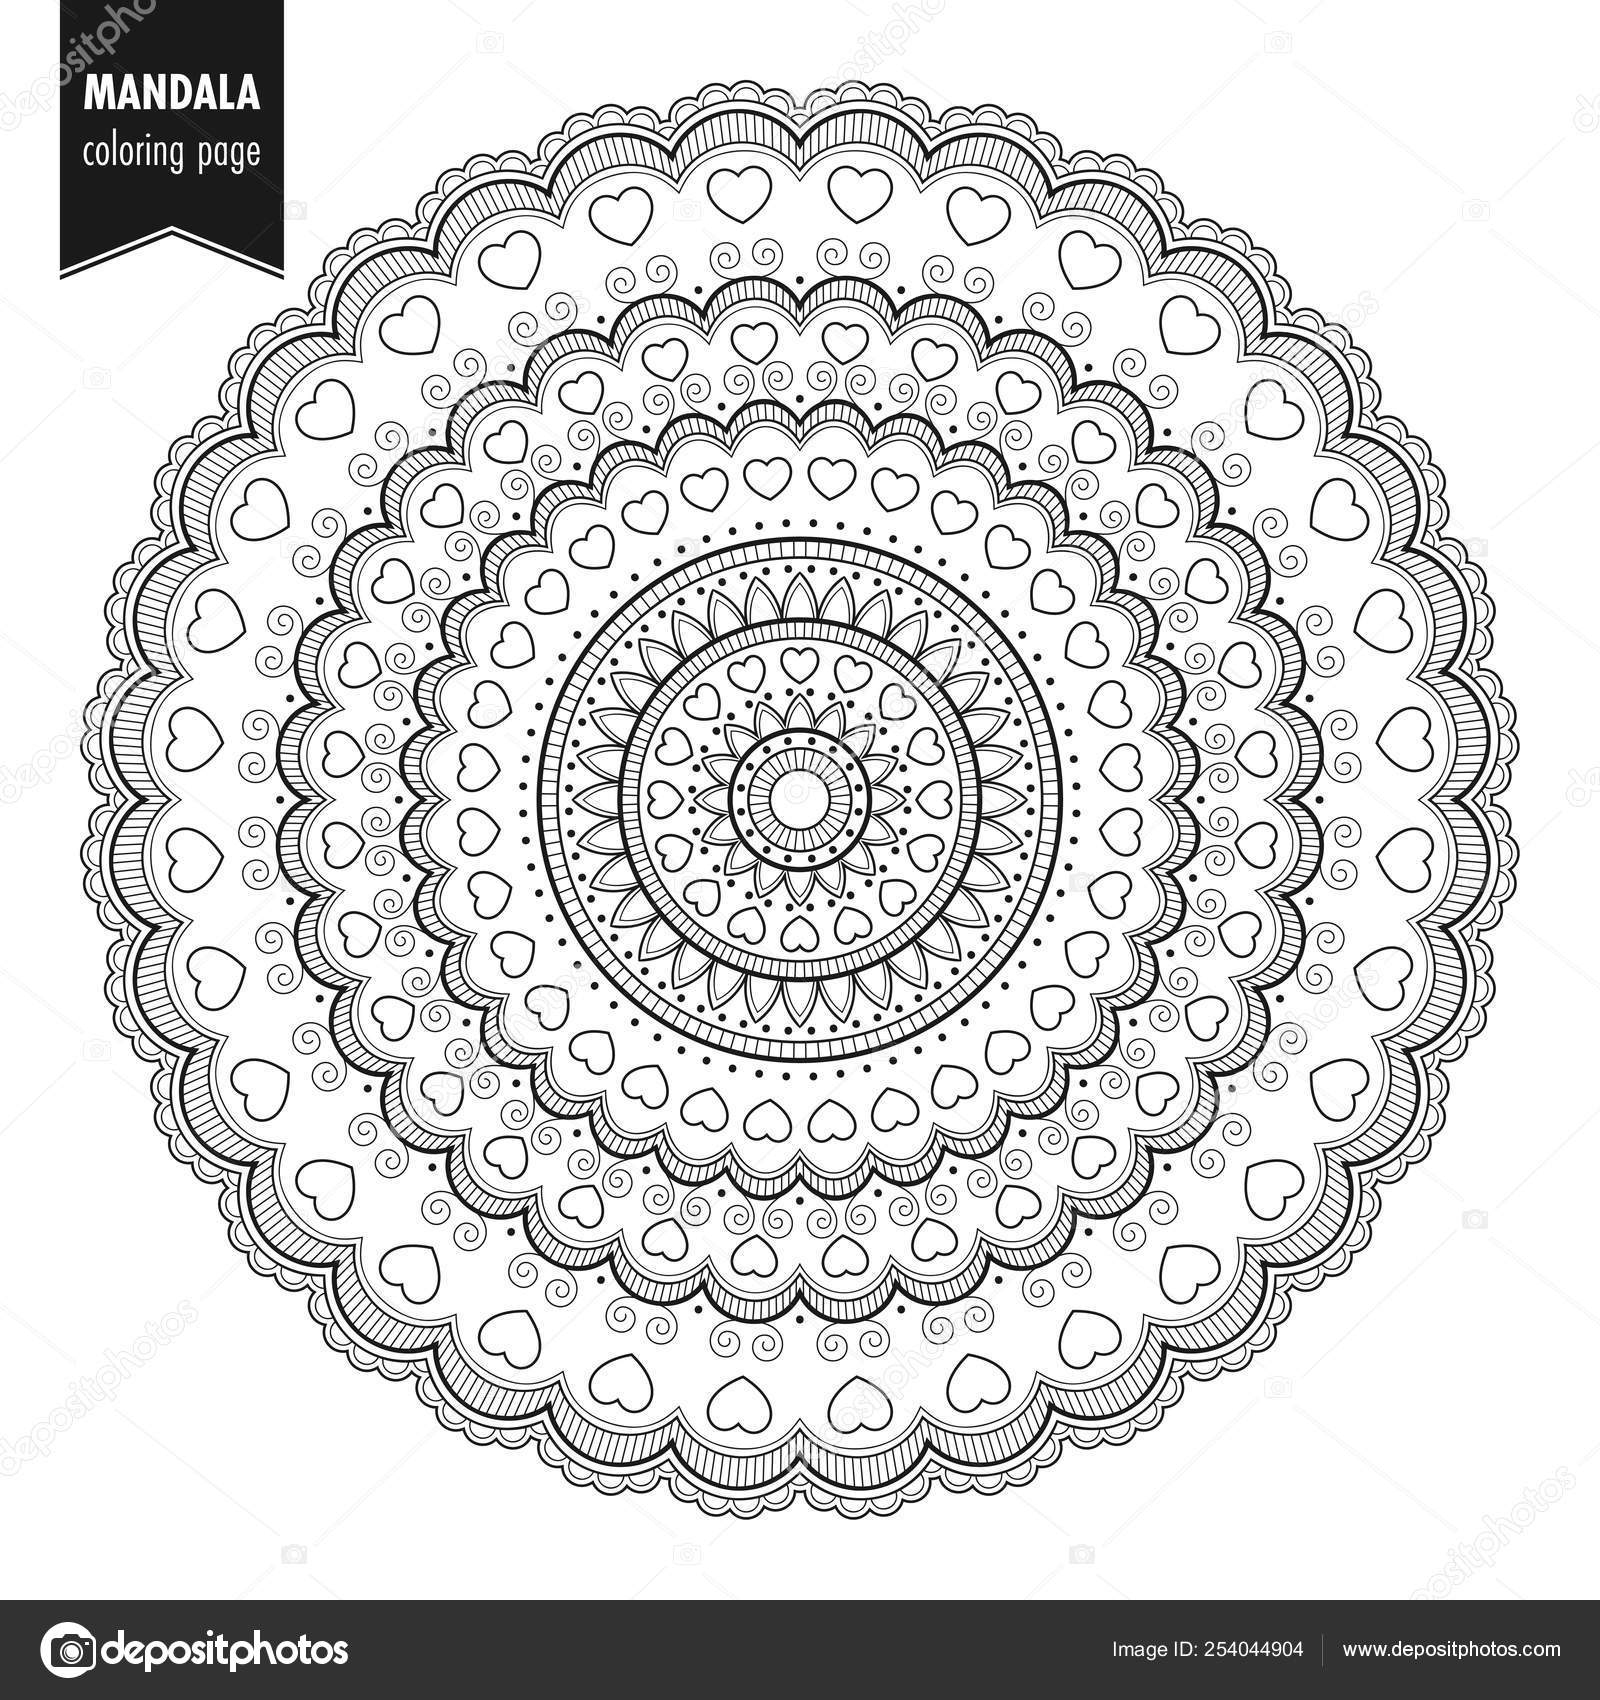 depositphotos stock illustration mandala round ornament bw